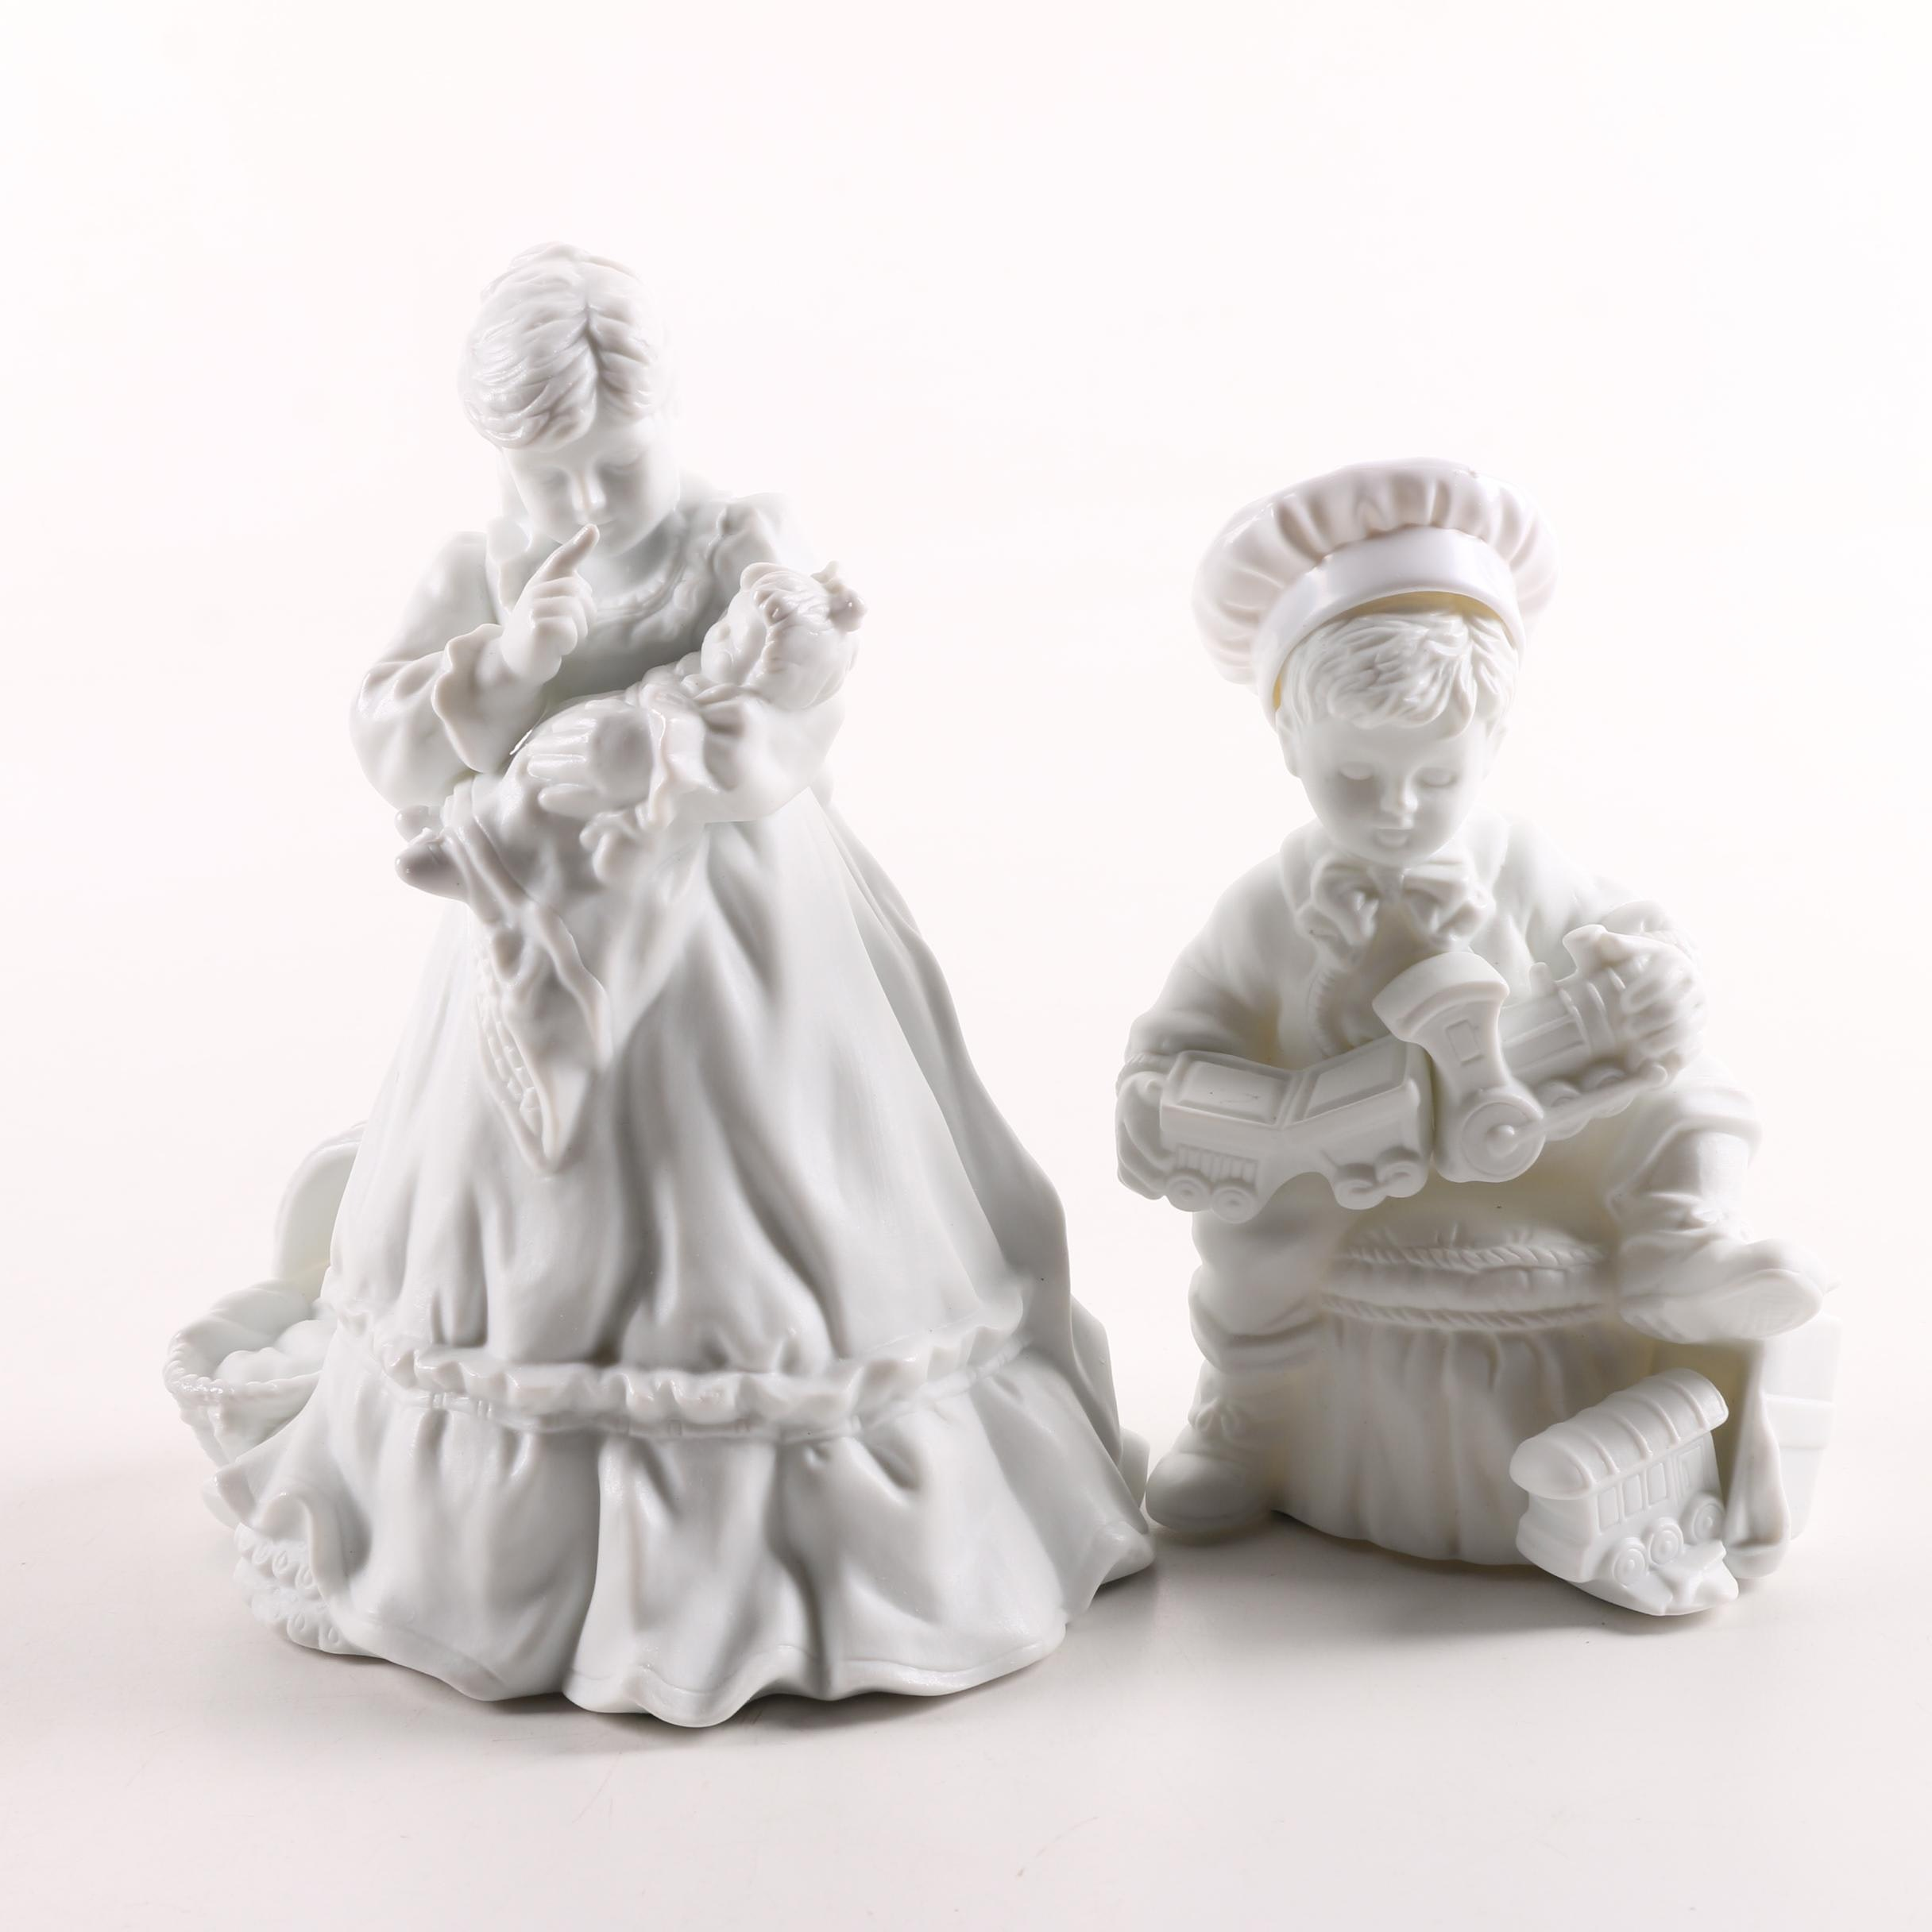 Department 56 Porcelain Figurines